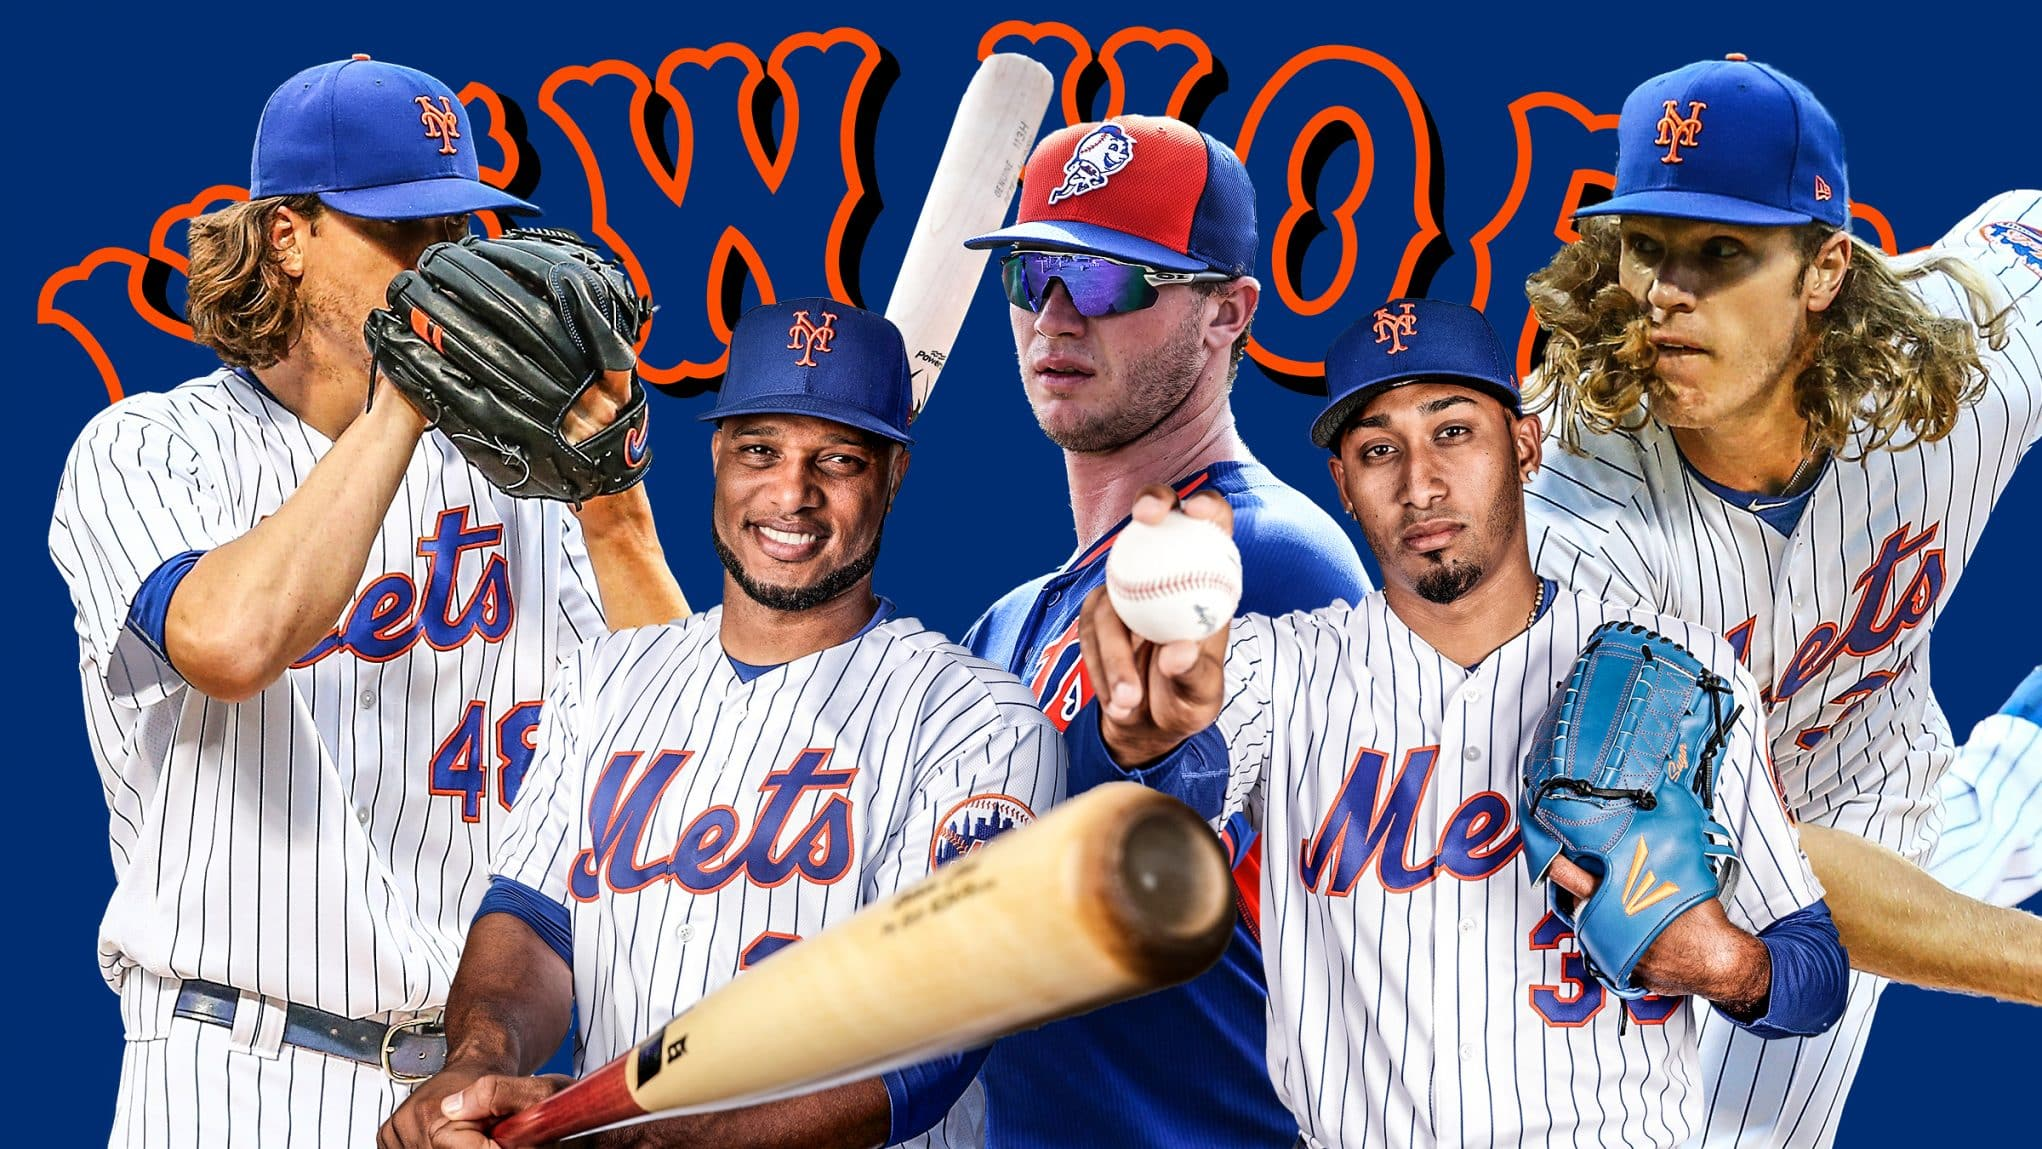 Be careful; the New York Mets may shock the baseball world in 2019